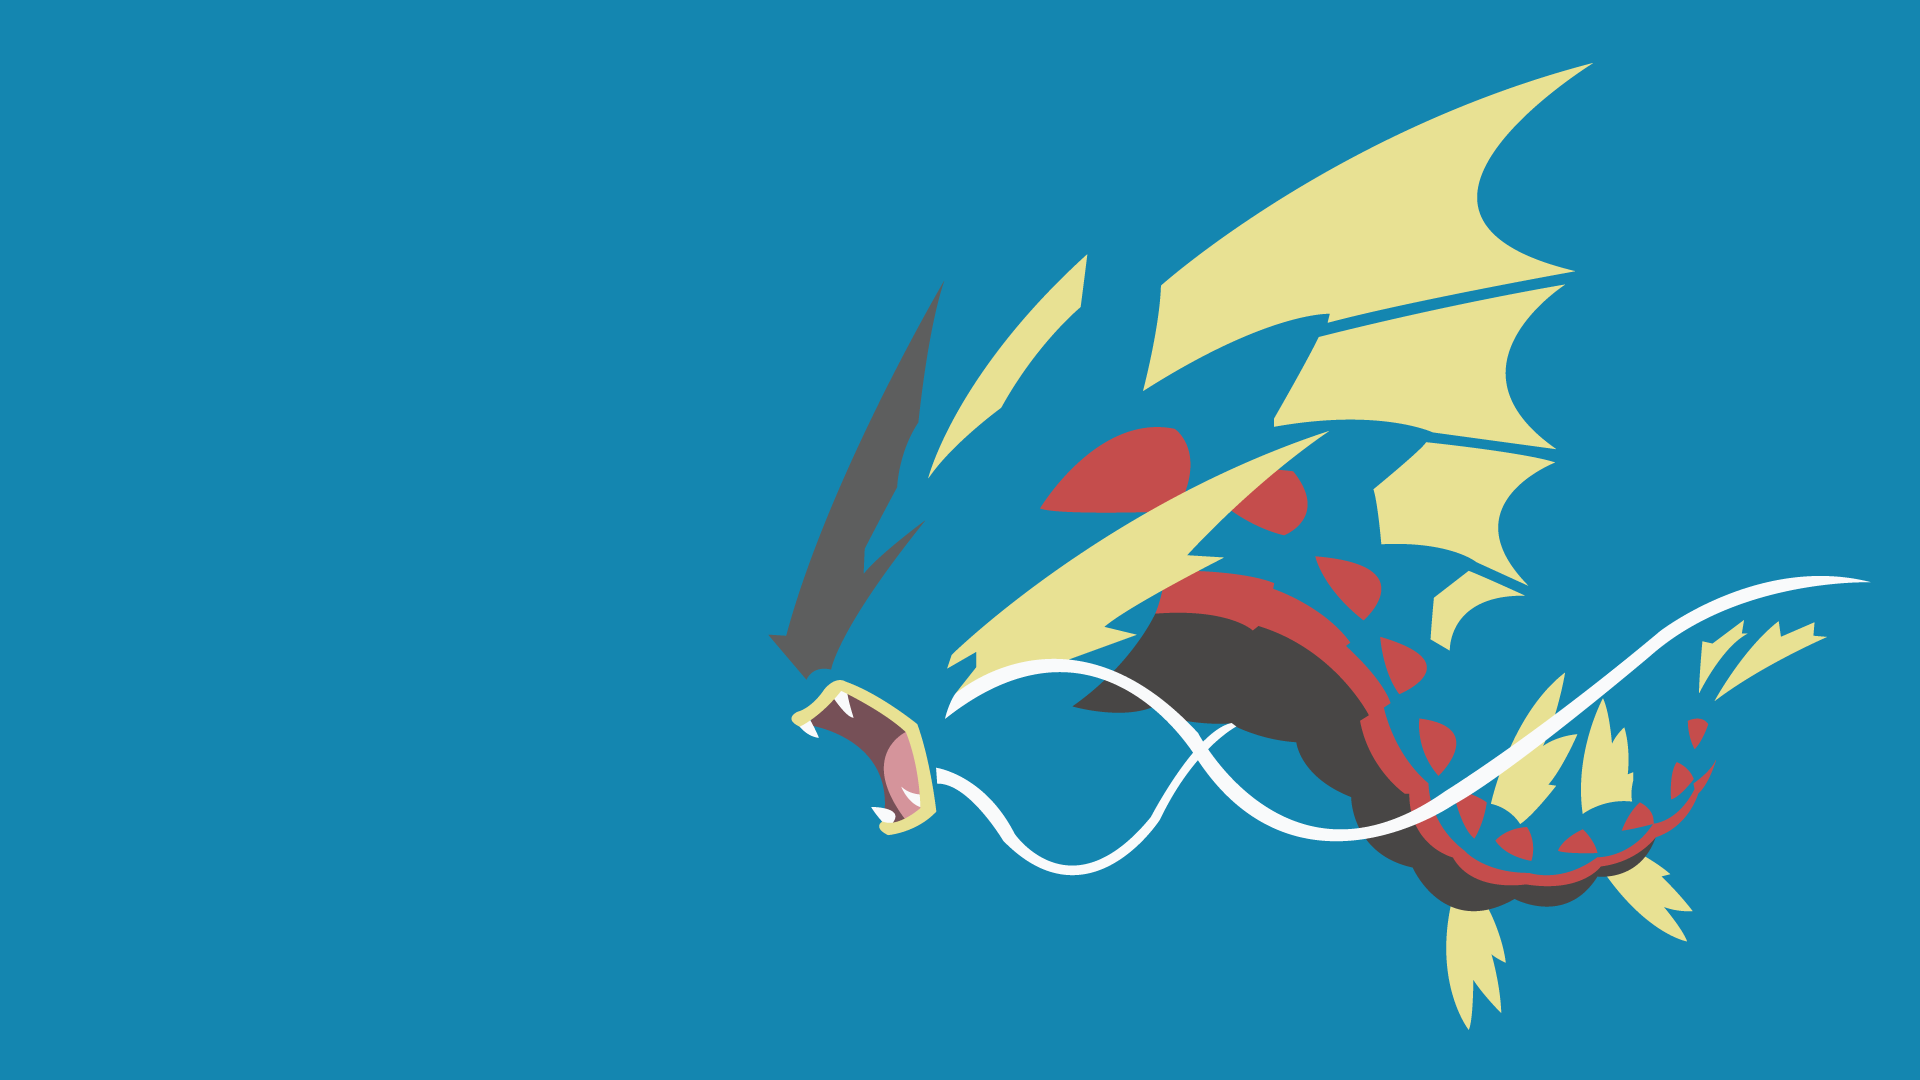 Mega gyarados by limecatmastr on deviantart for Going minimalist